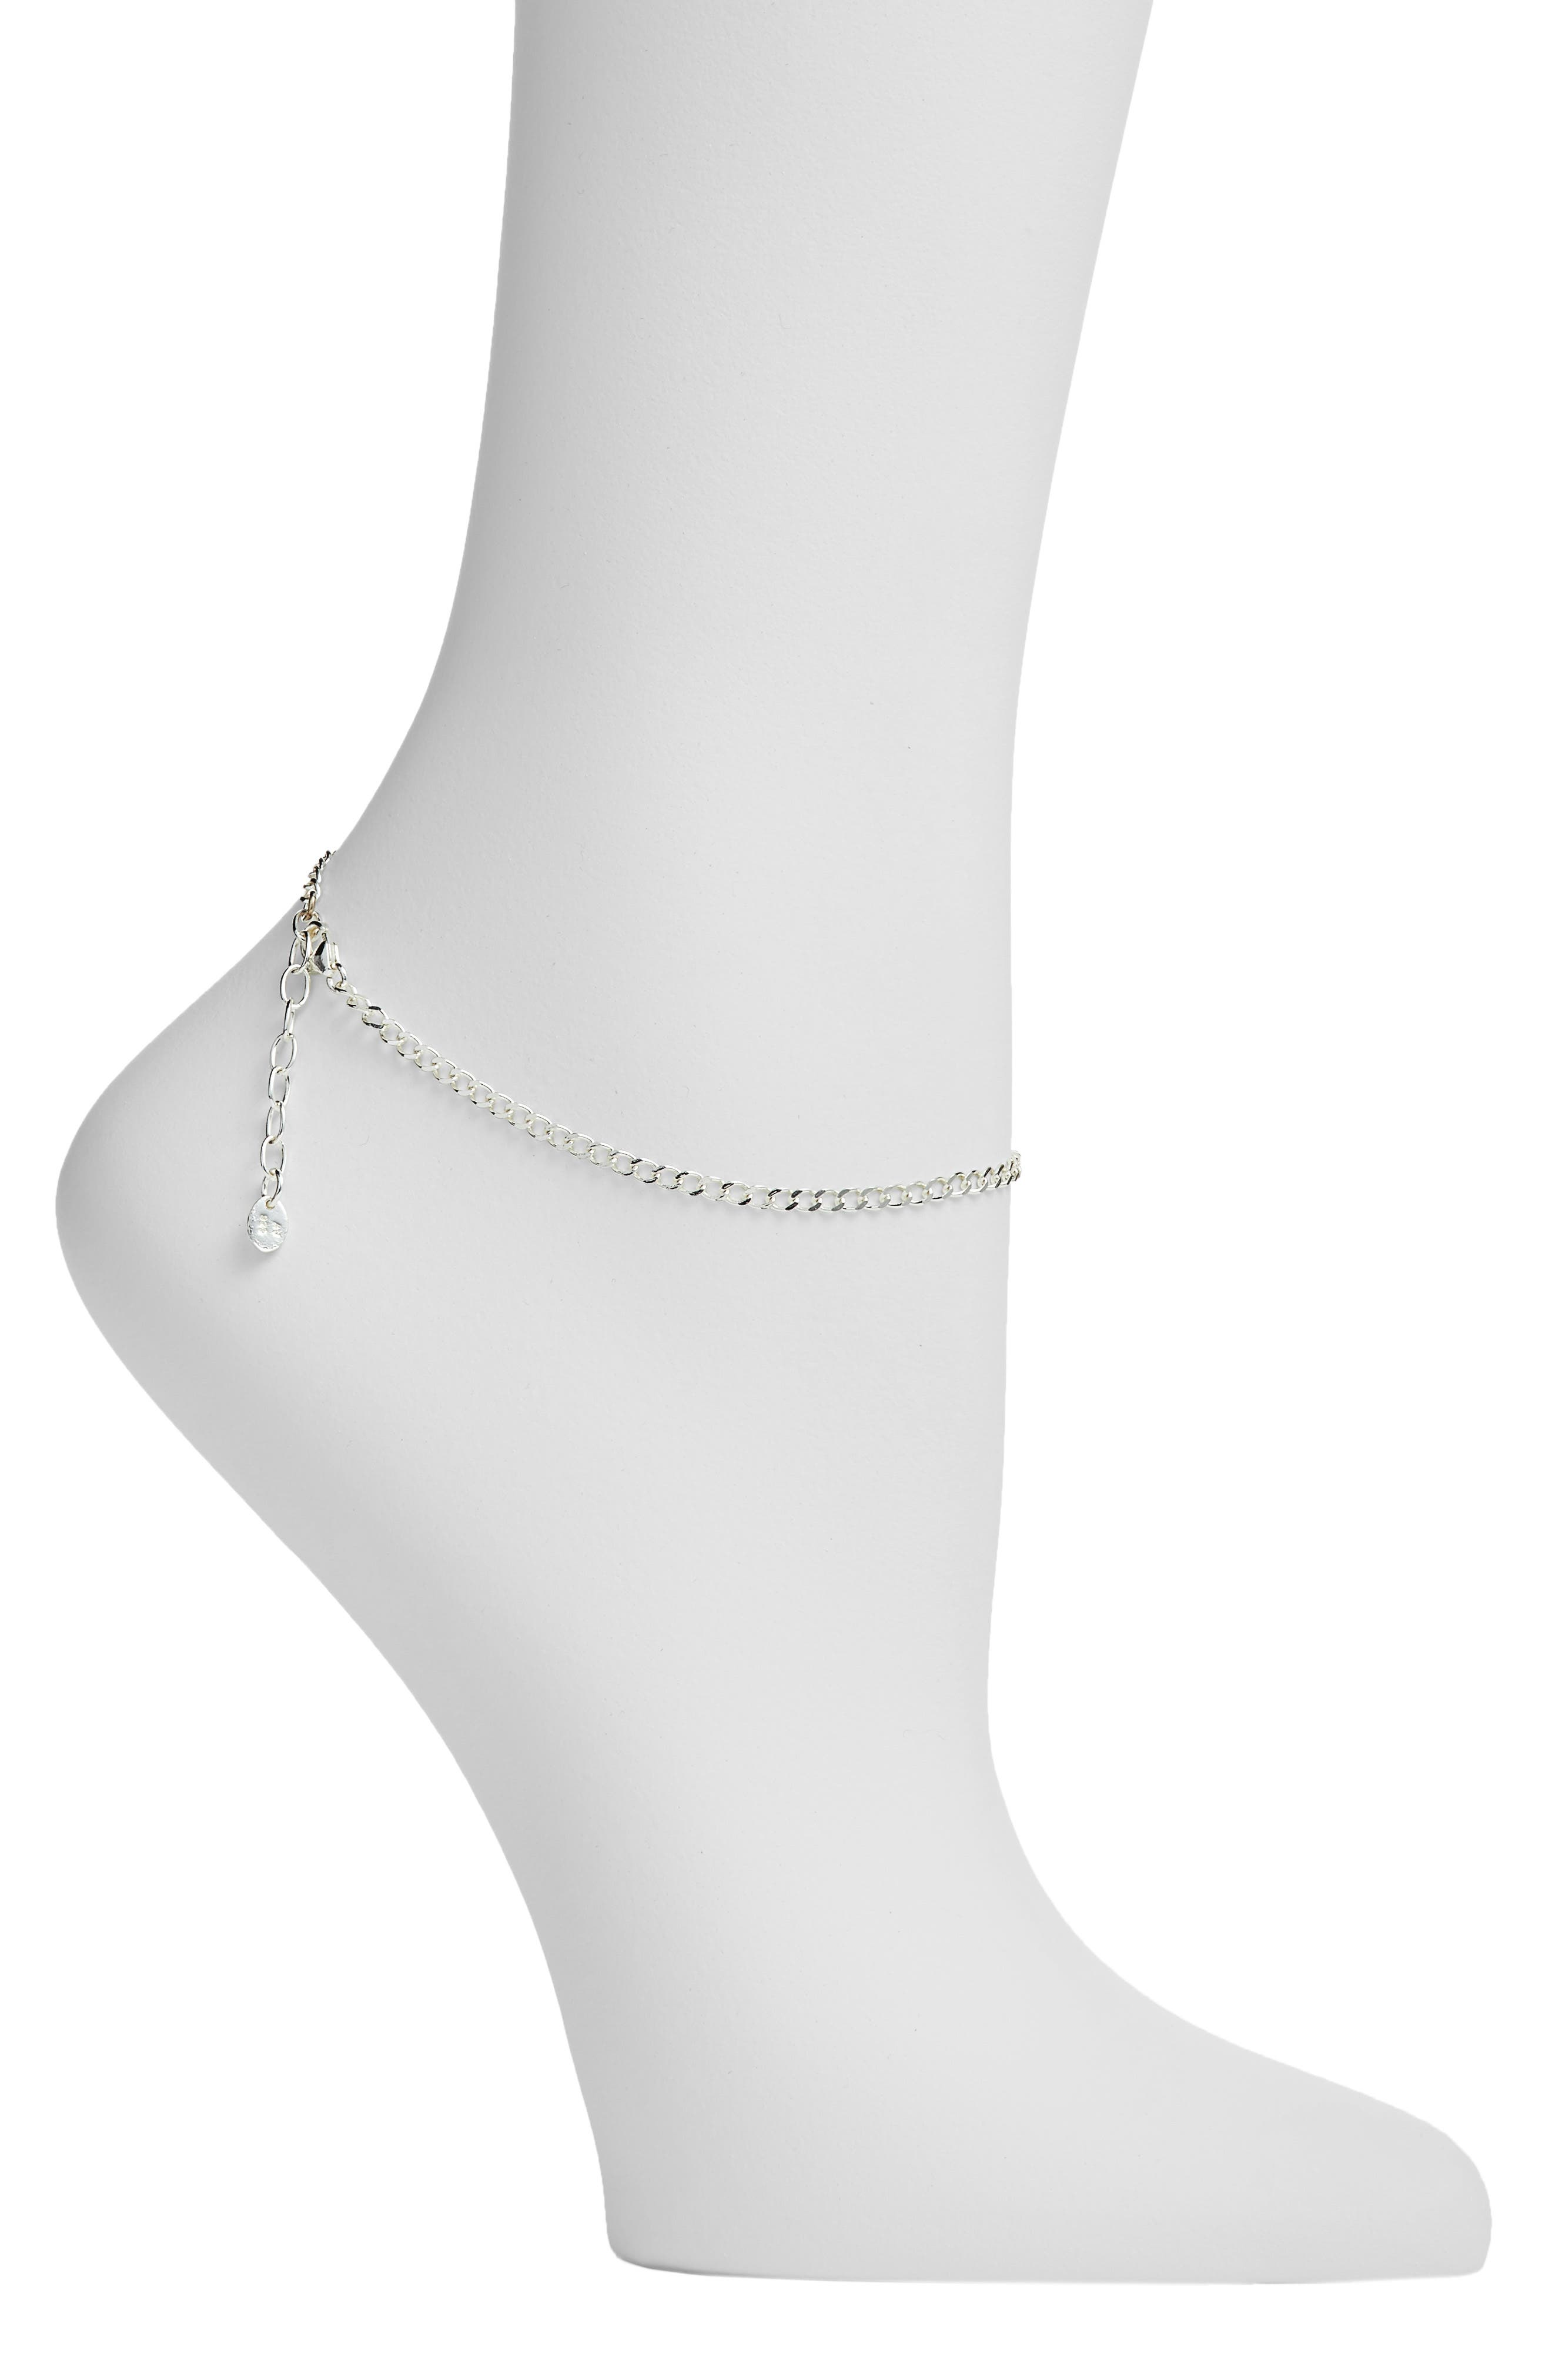 chain plated necklace chains vermeil bracelet cute anklet heart sizes sterling silver link gold all